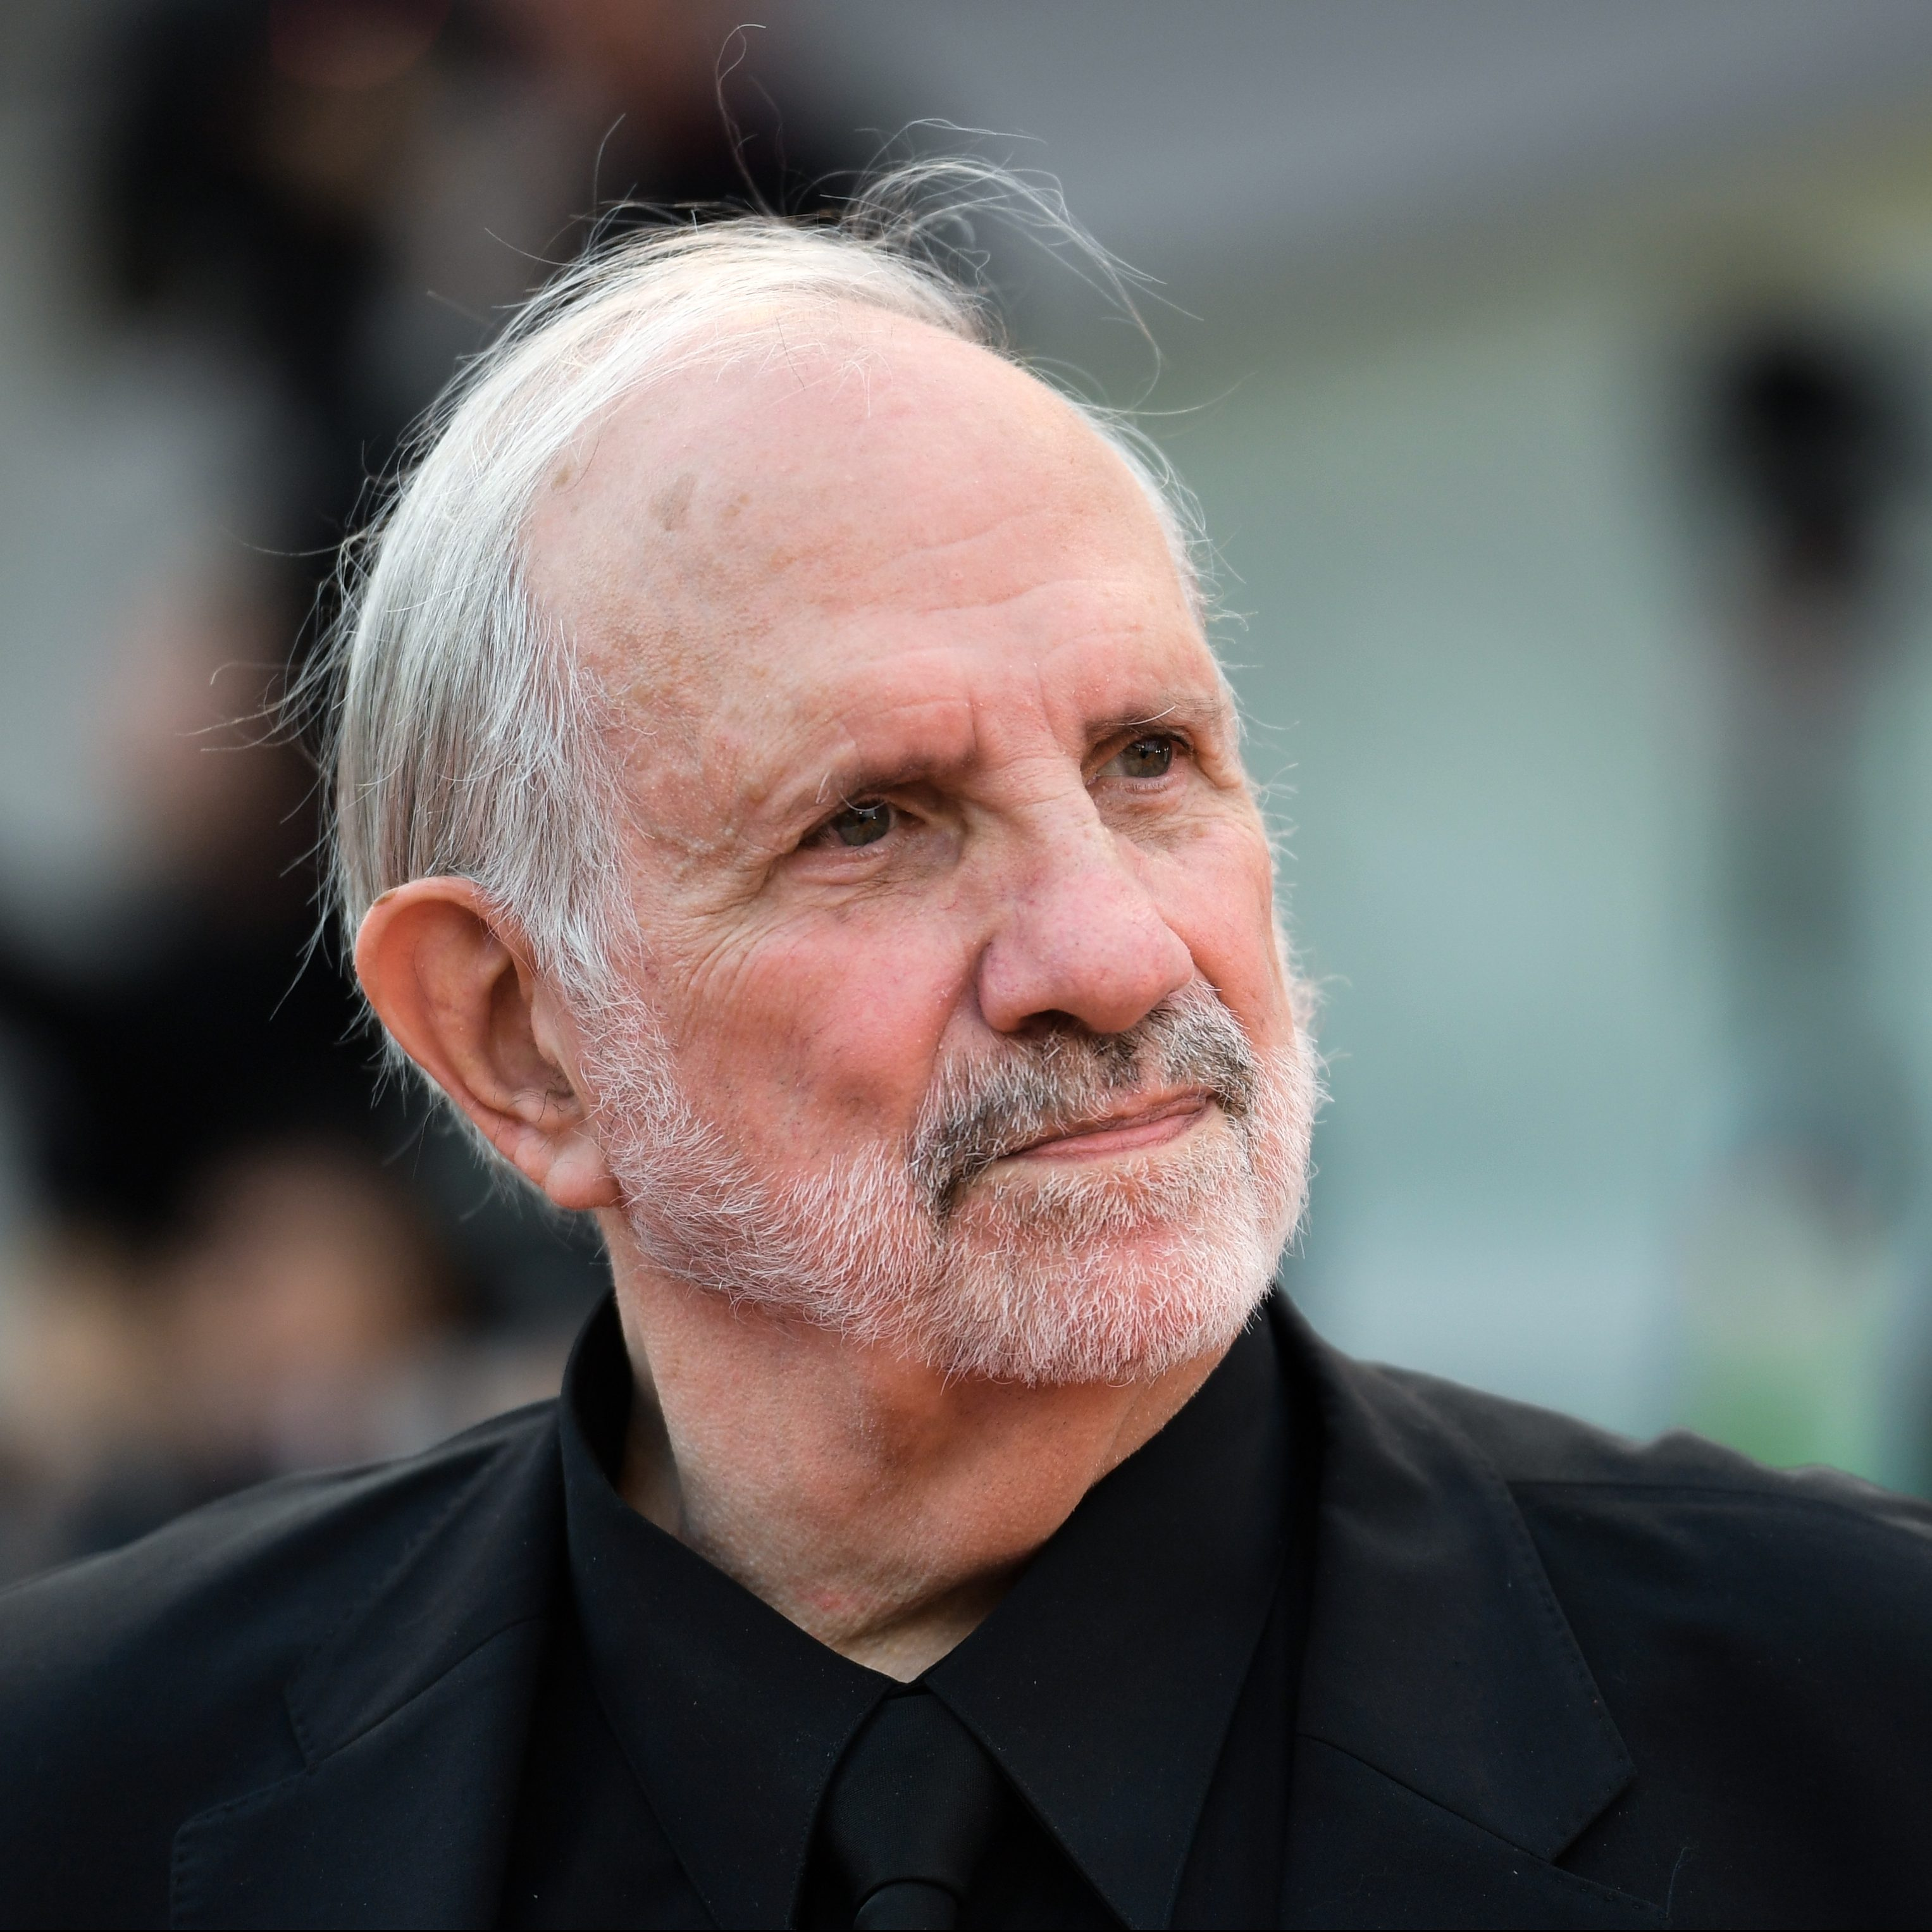 afp US Film director brian De palma Venice 29aug19 e1574769443421 Stay Tuned For 20 Amazing Facts About The Truman Show